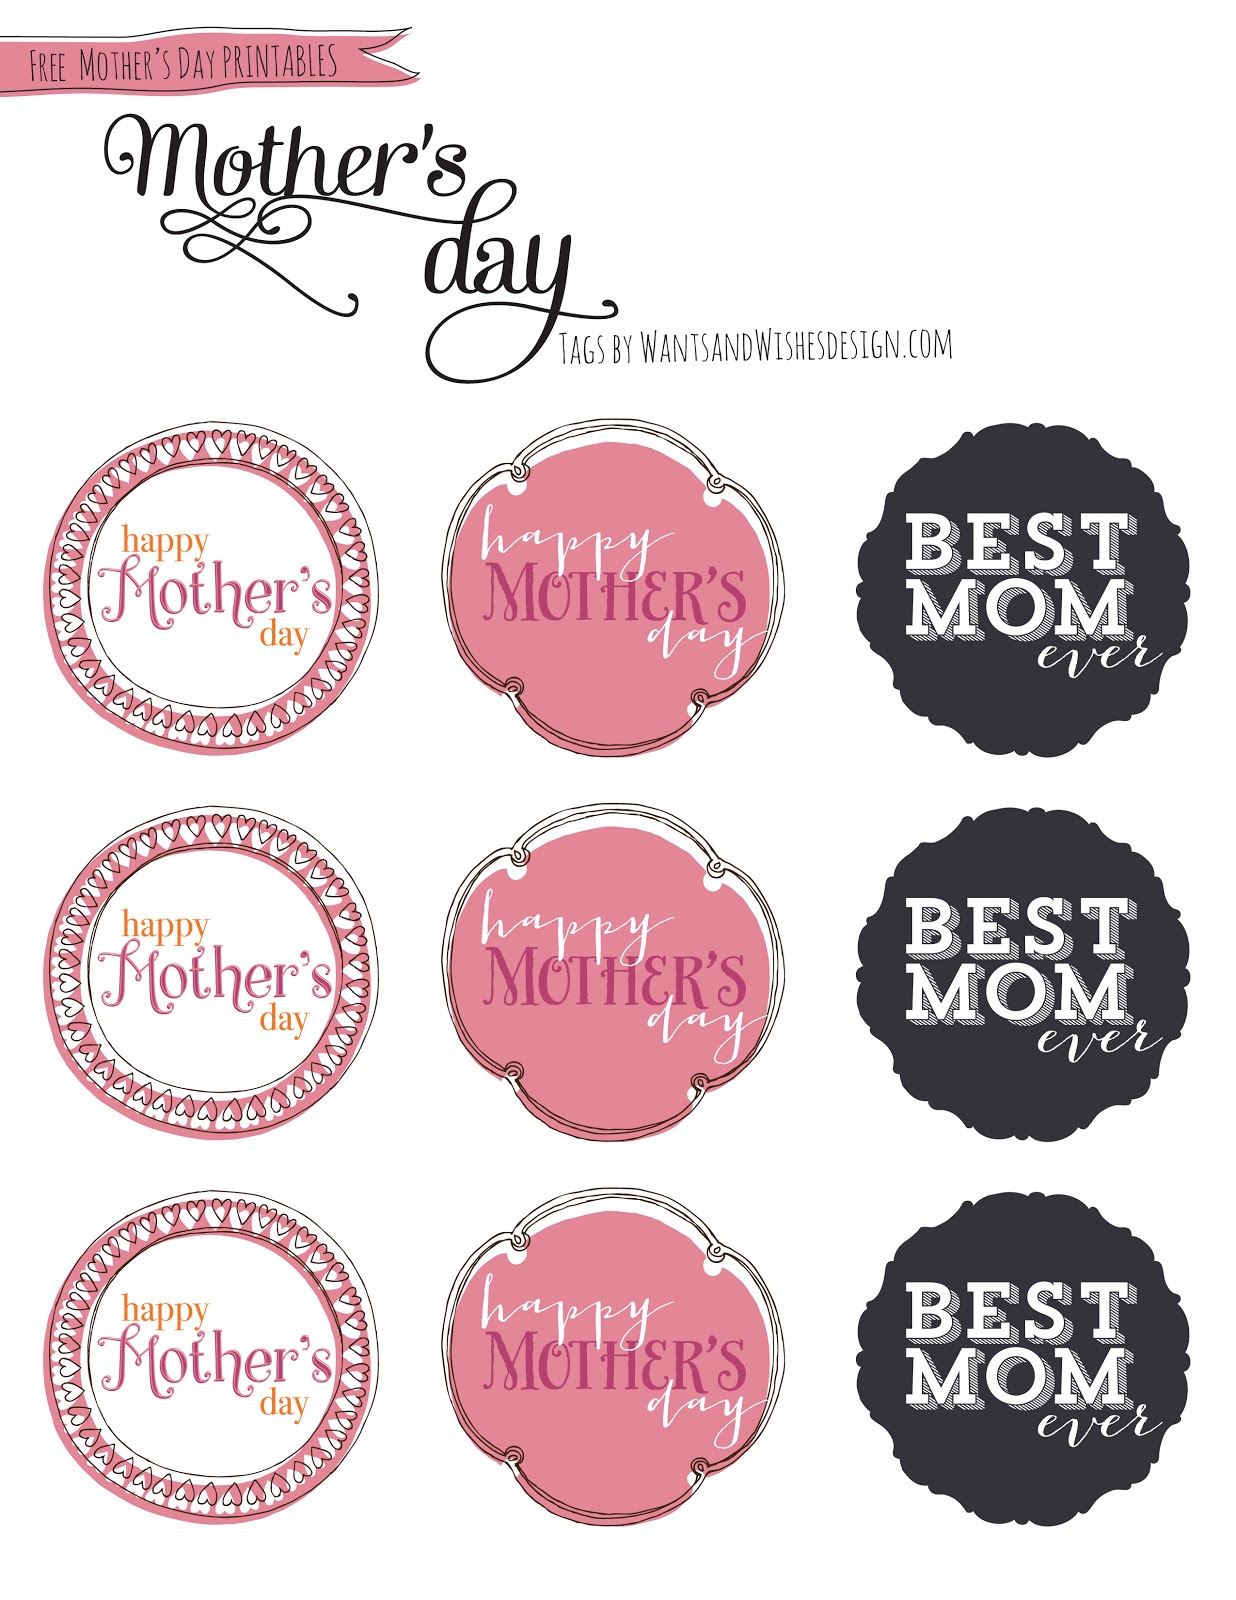 free mother s day printables treat. Black Bedroom Furniture Sets. Home Design Ideas